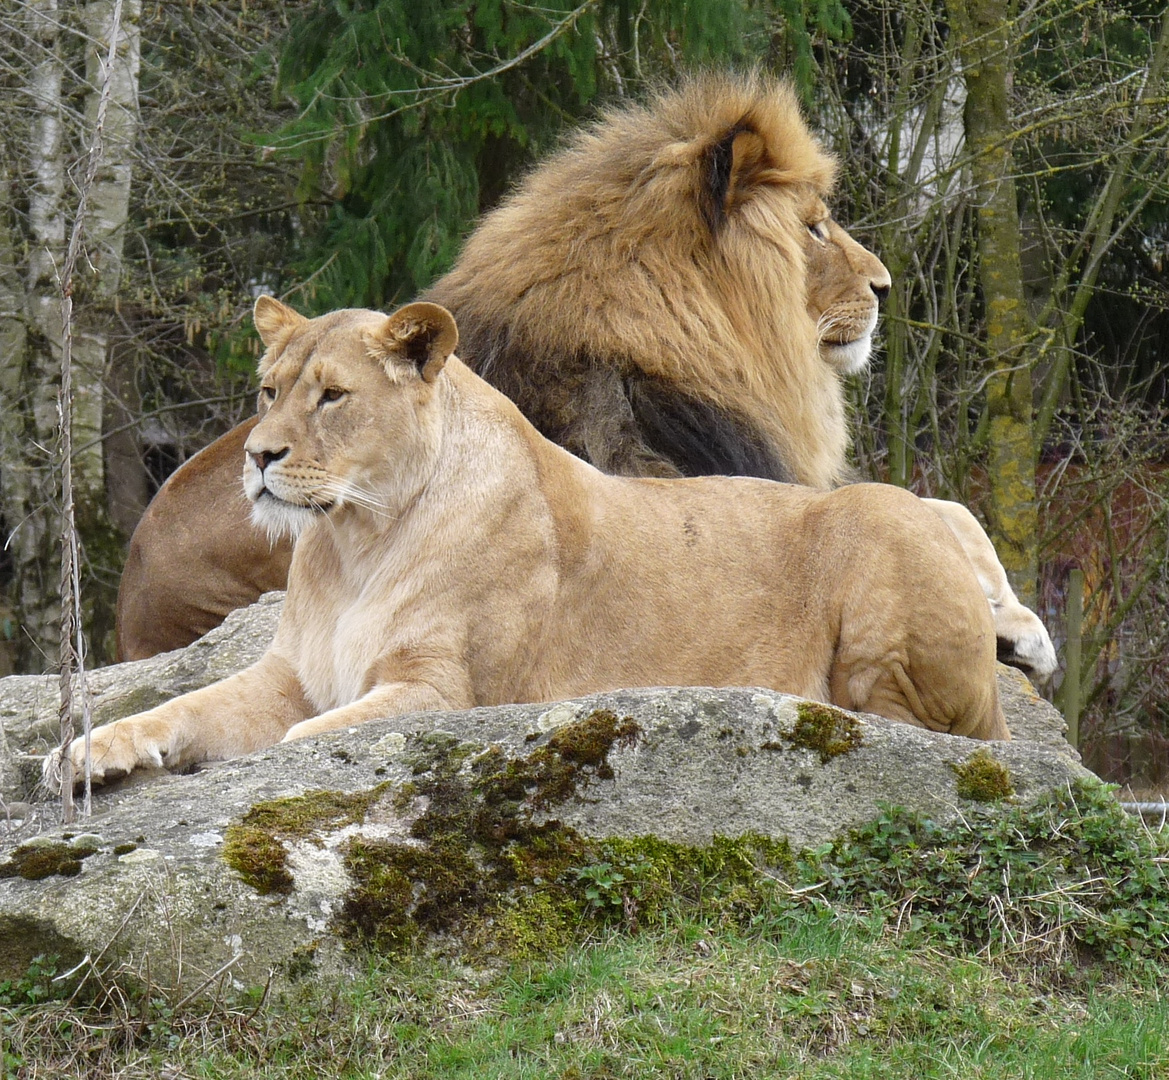 Kings of lion